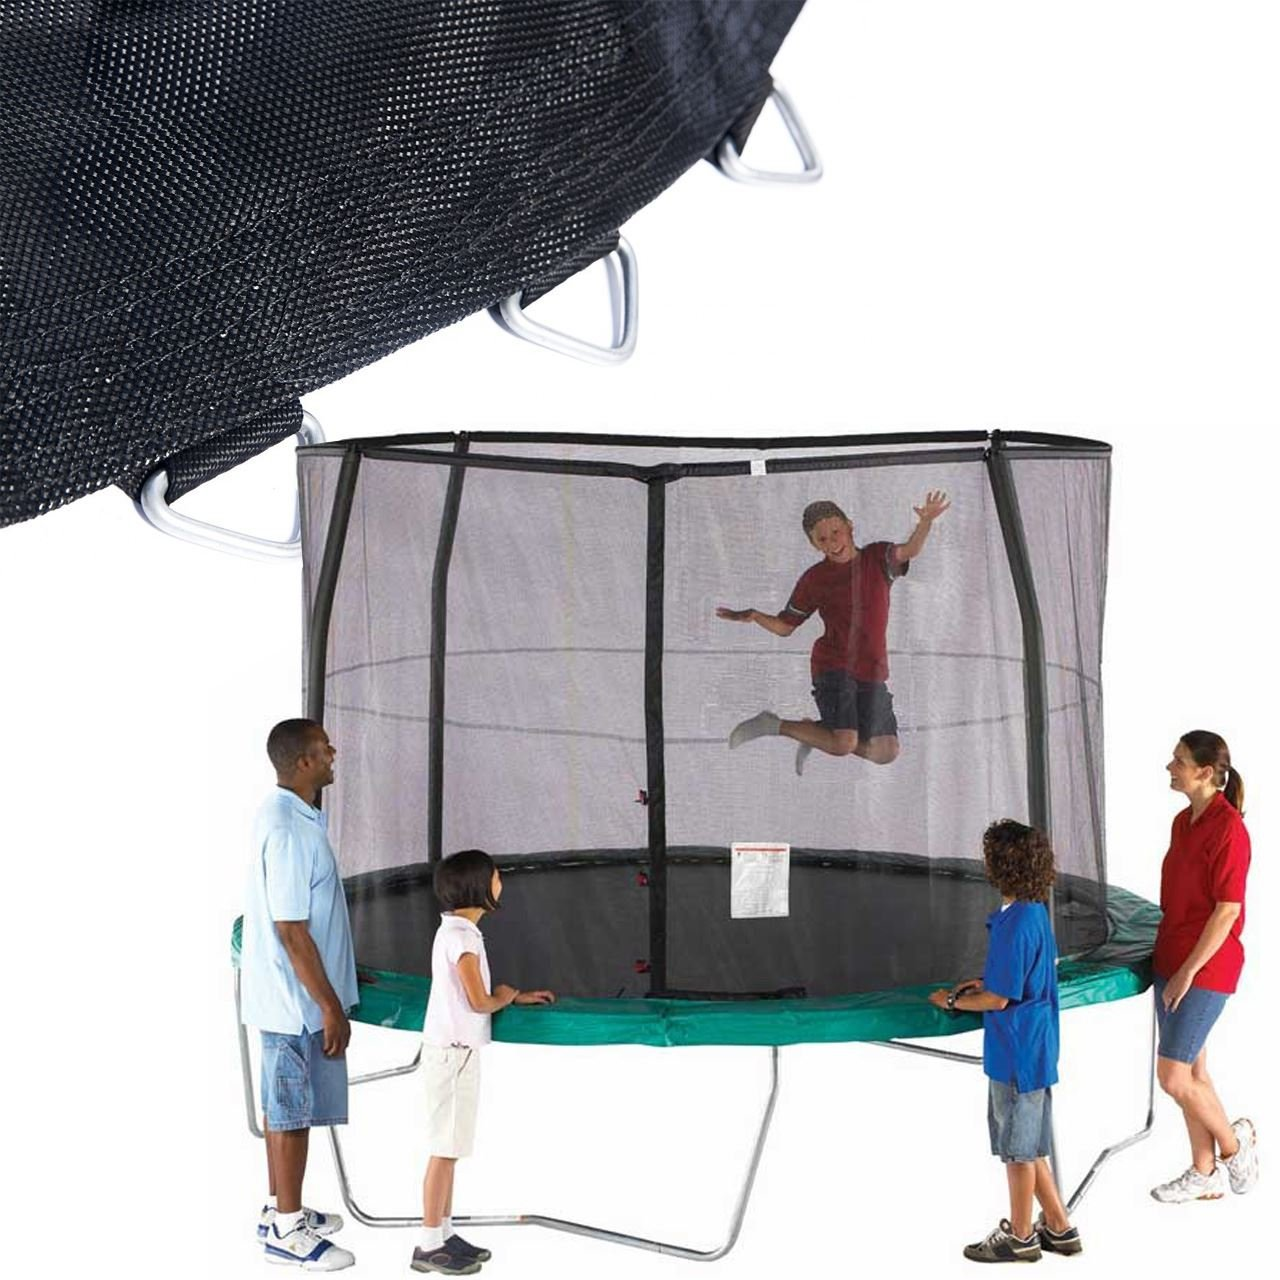 SkyBound 14' Net + Mat Combo (Fits Orbounder Brand Trampolines)